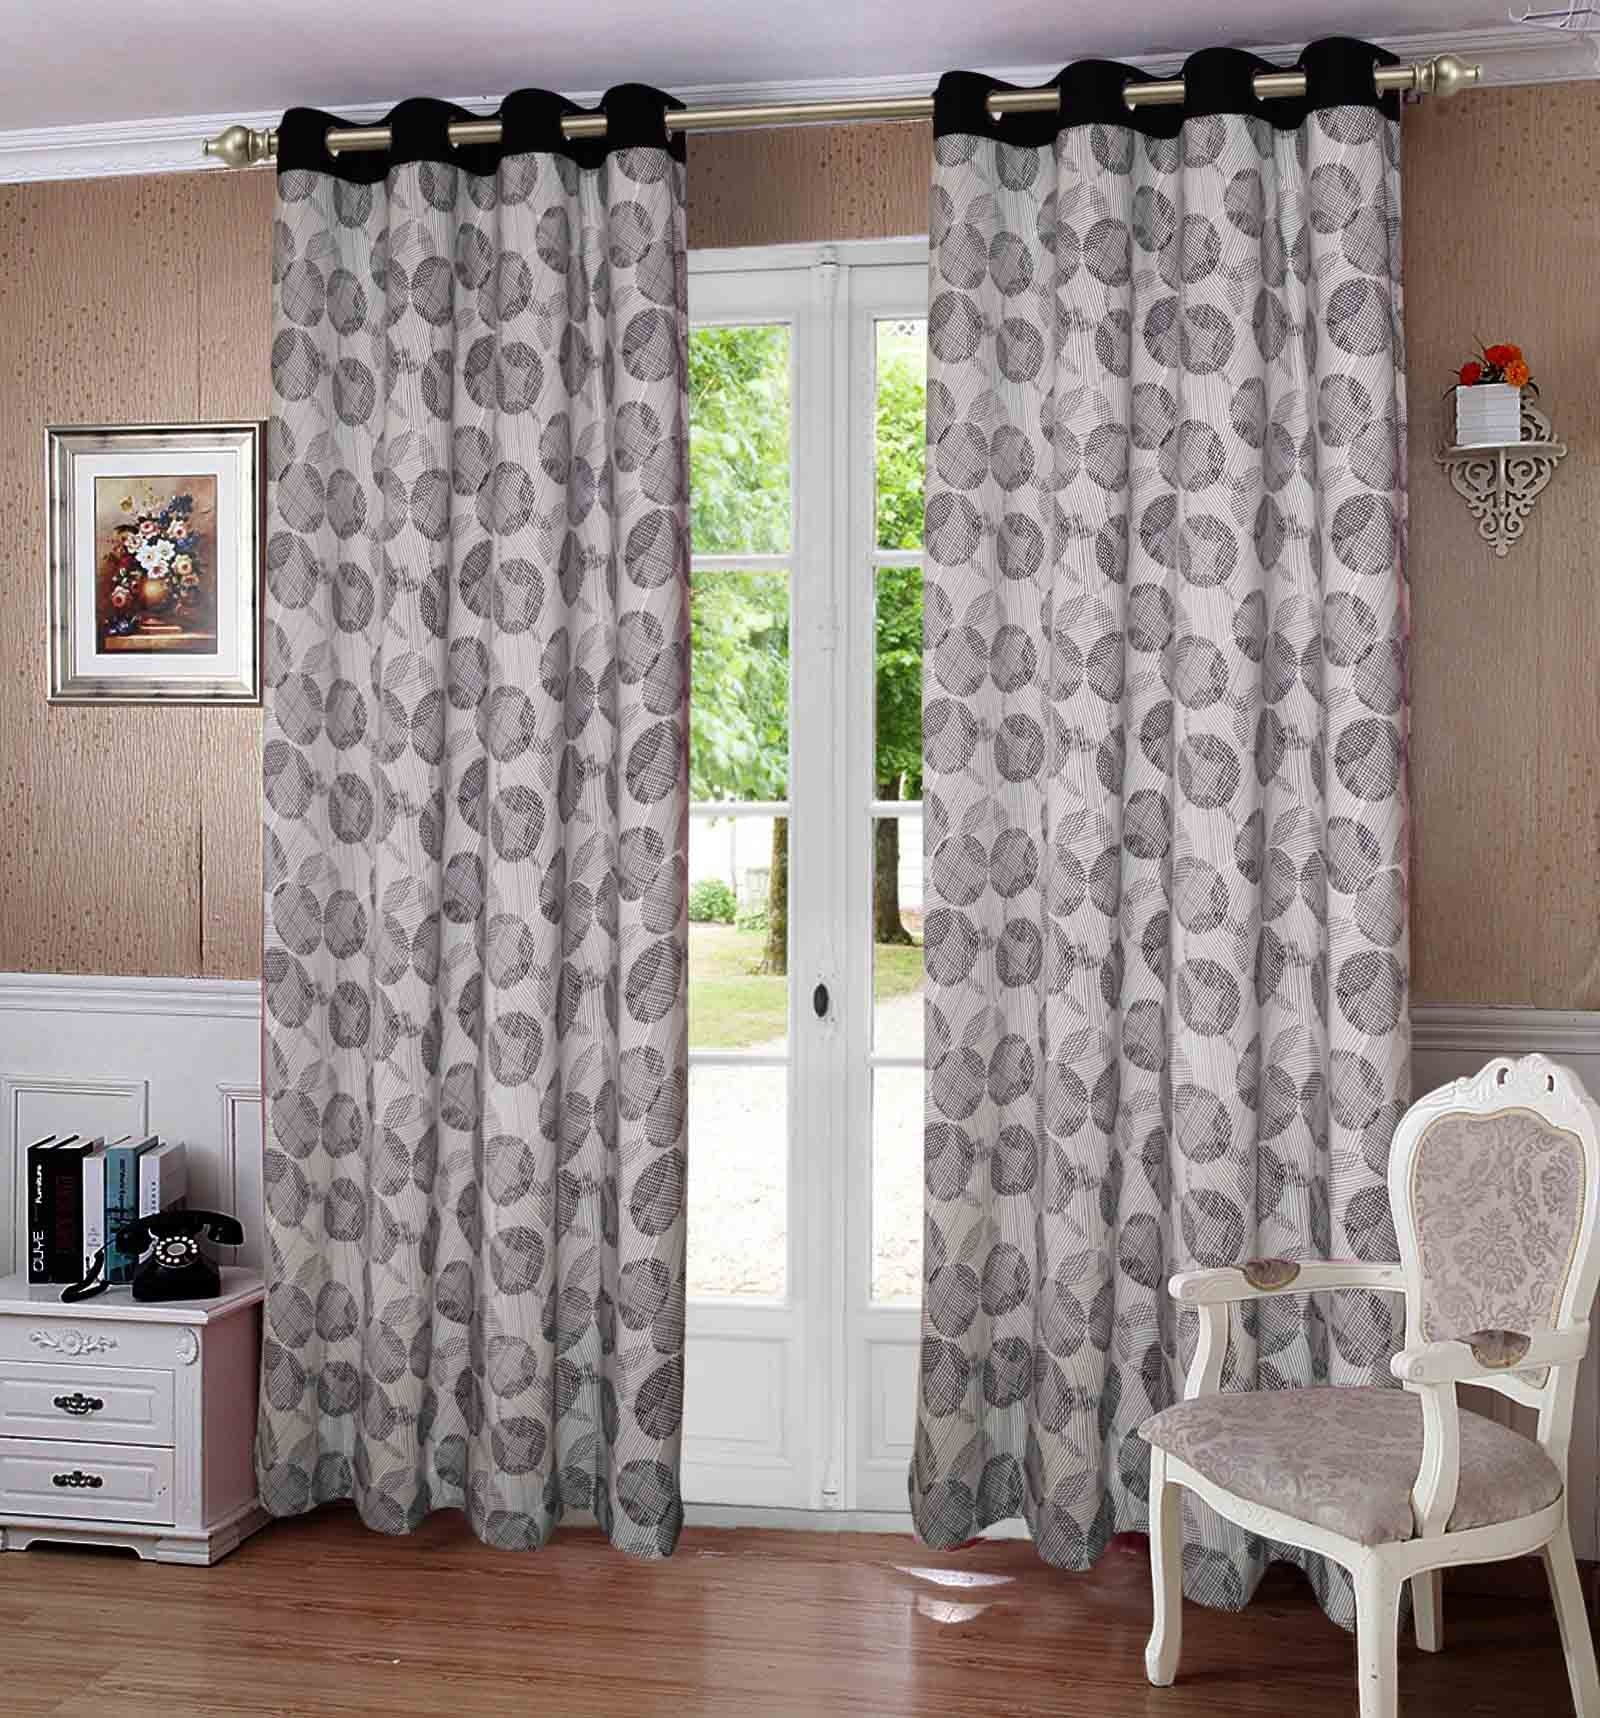 Lushomes Geometric Printed Cotton Curtains with 8 Eyelets & Plain Tiebacks for Long Door (Single Pc) Size: 54x108 inches